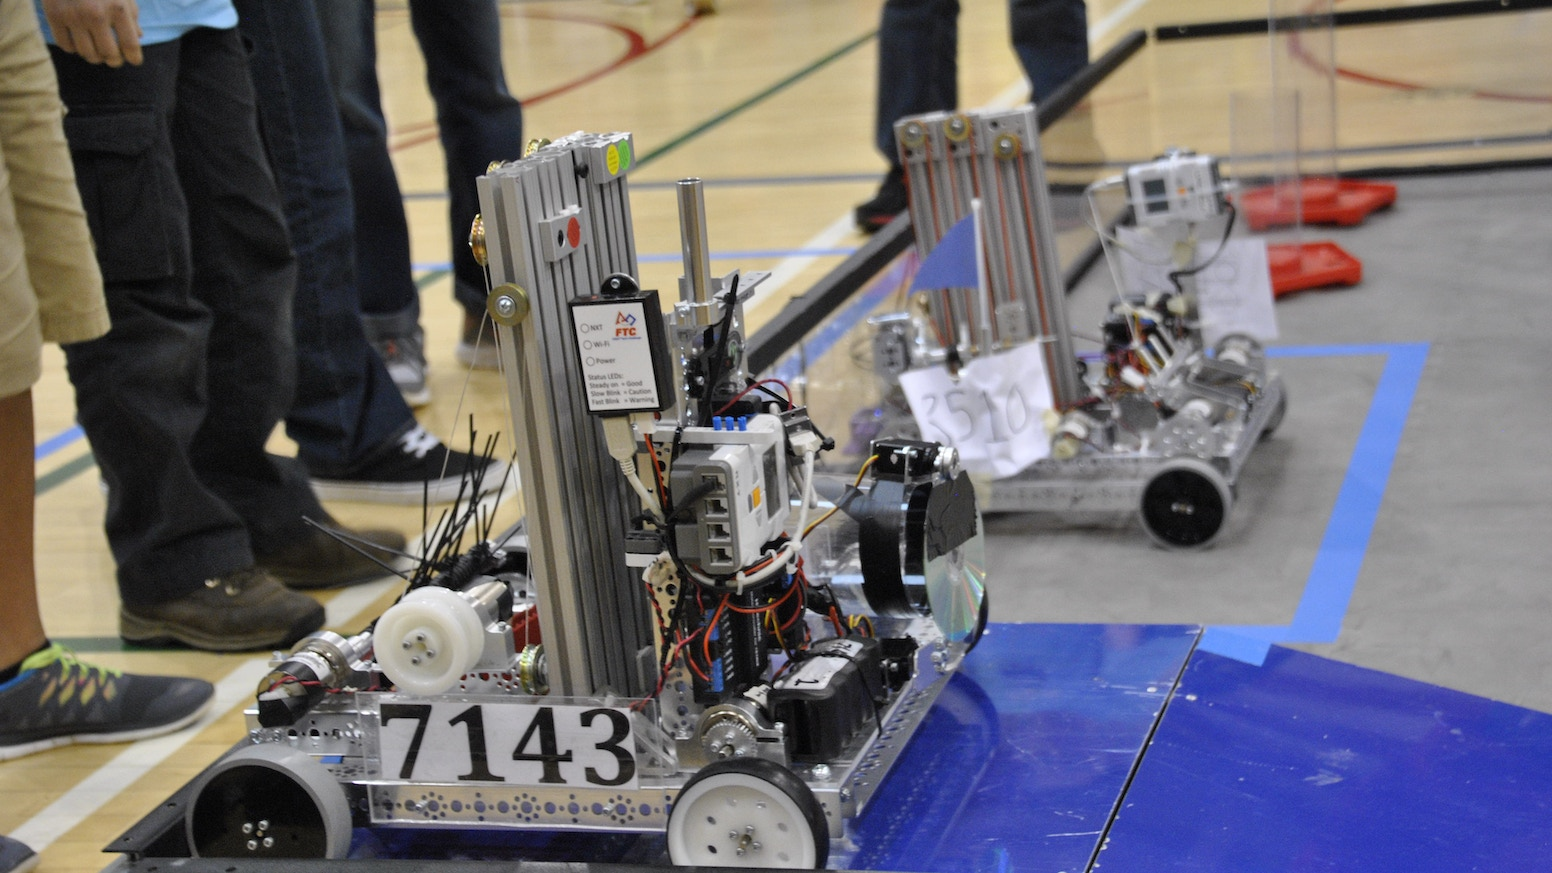 FIRST FTC Student Robot Construction Team #7143 by Fluid